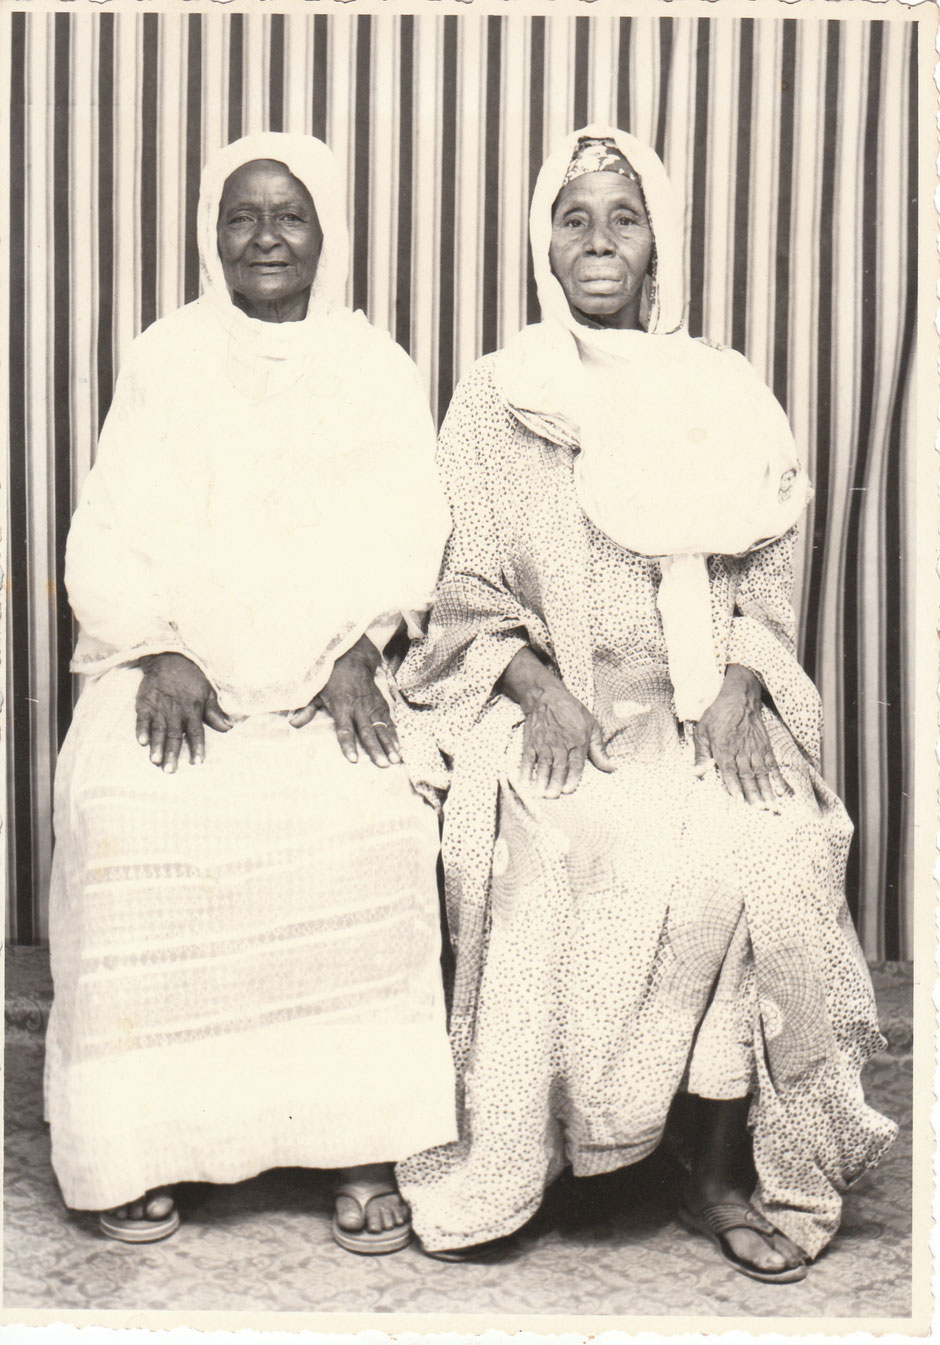 MALICK SIDIBE - PHOTO TIRAGE ORIGINAL - GALERIE MAXANART